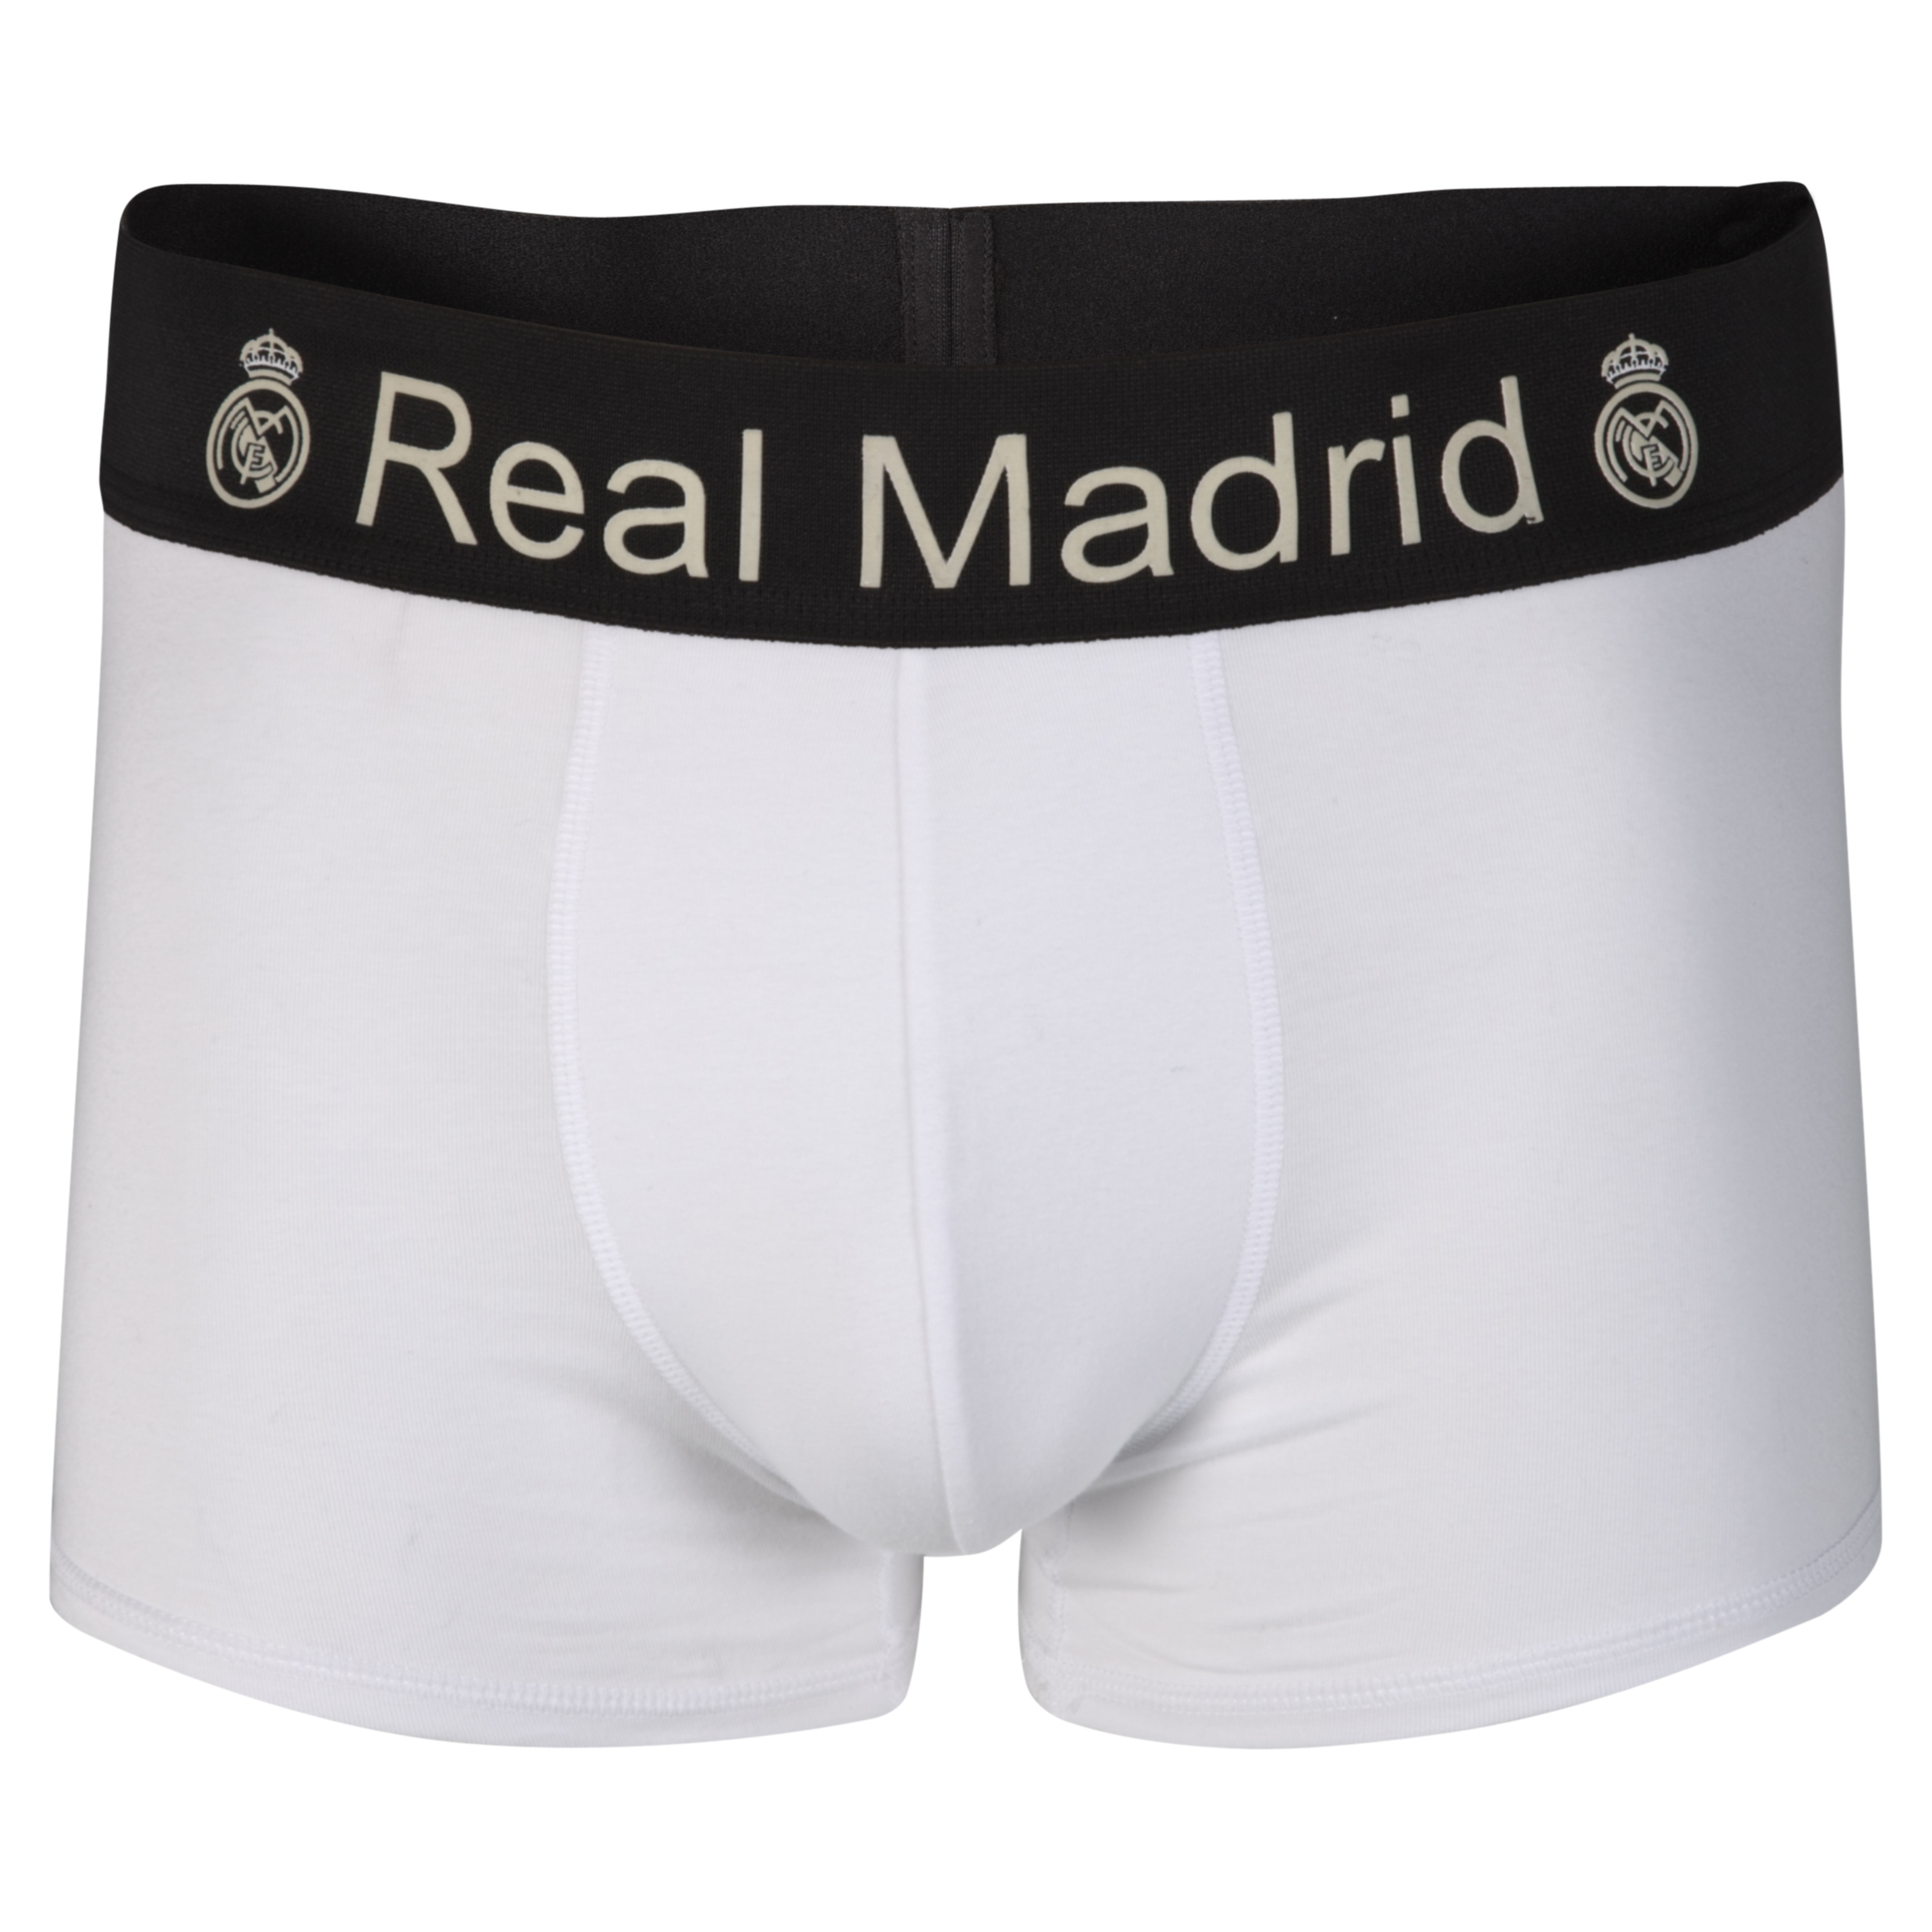 Boxers del Real Madrid